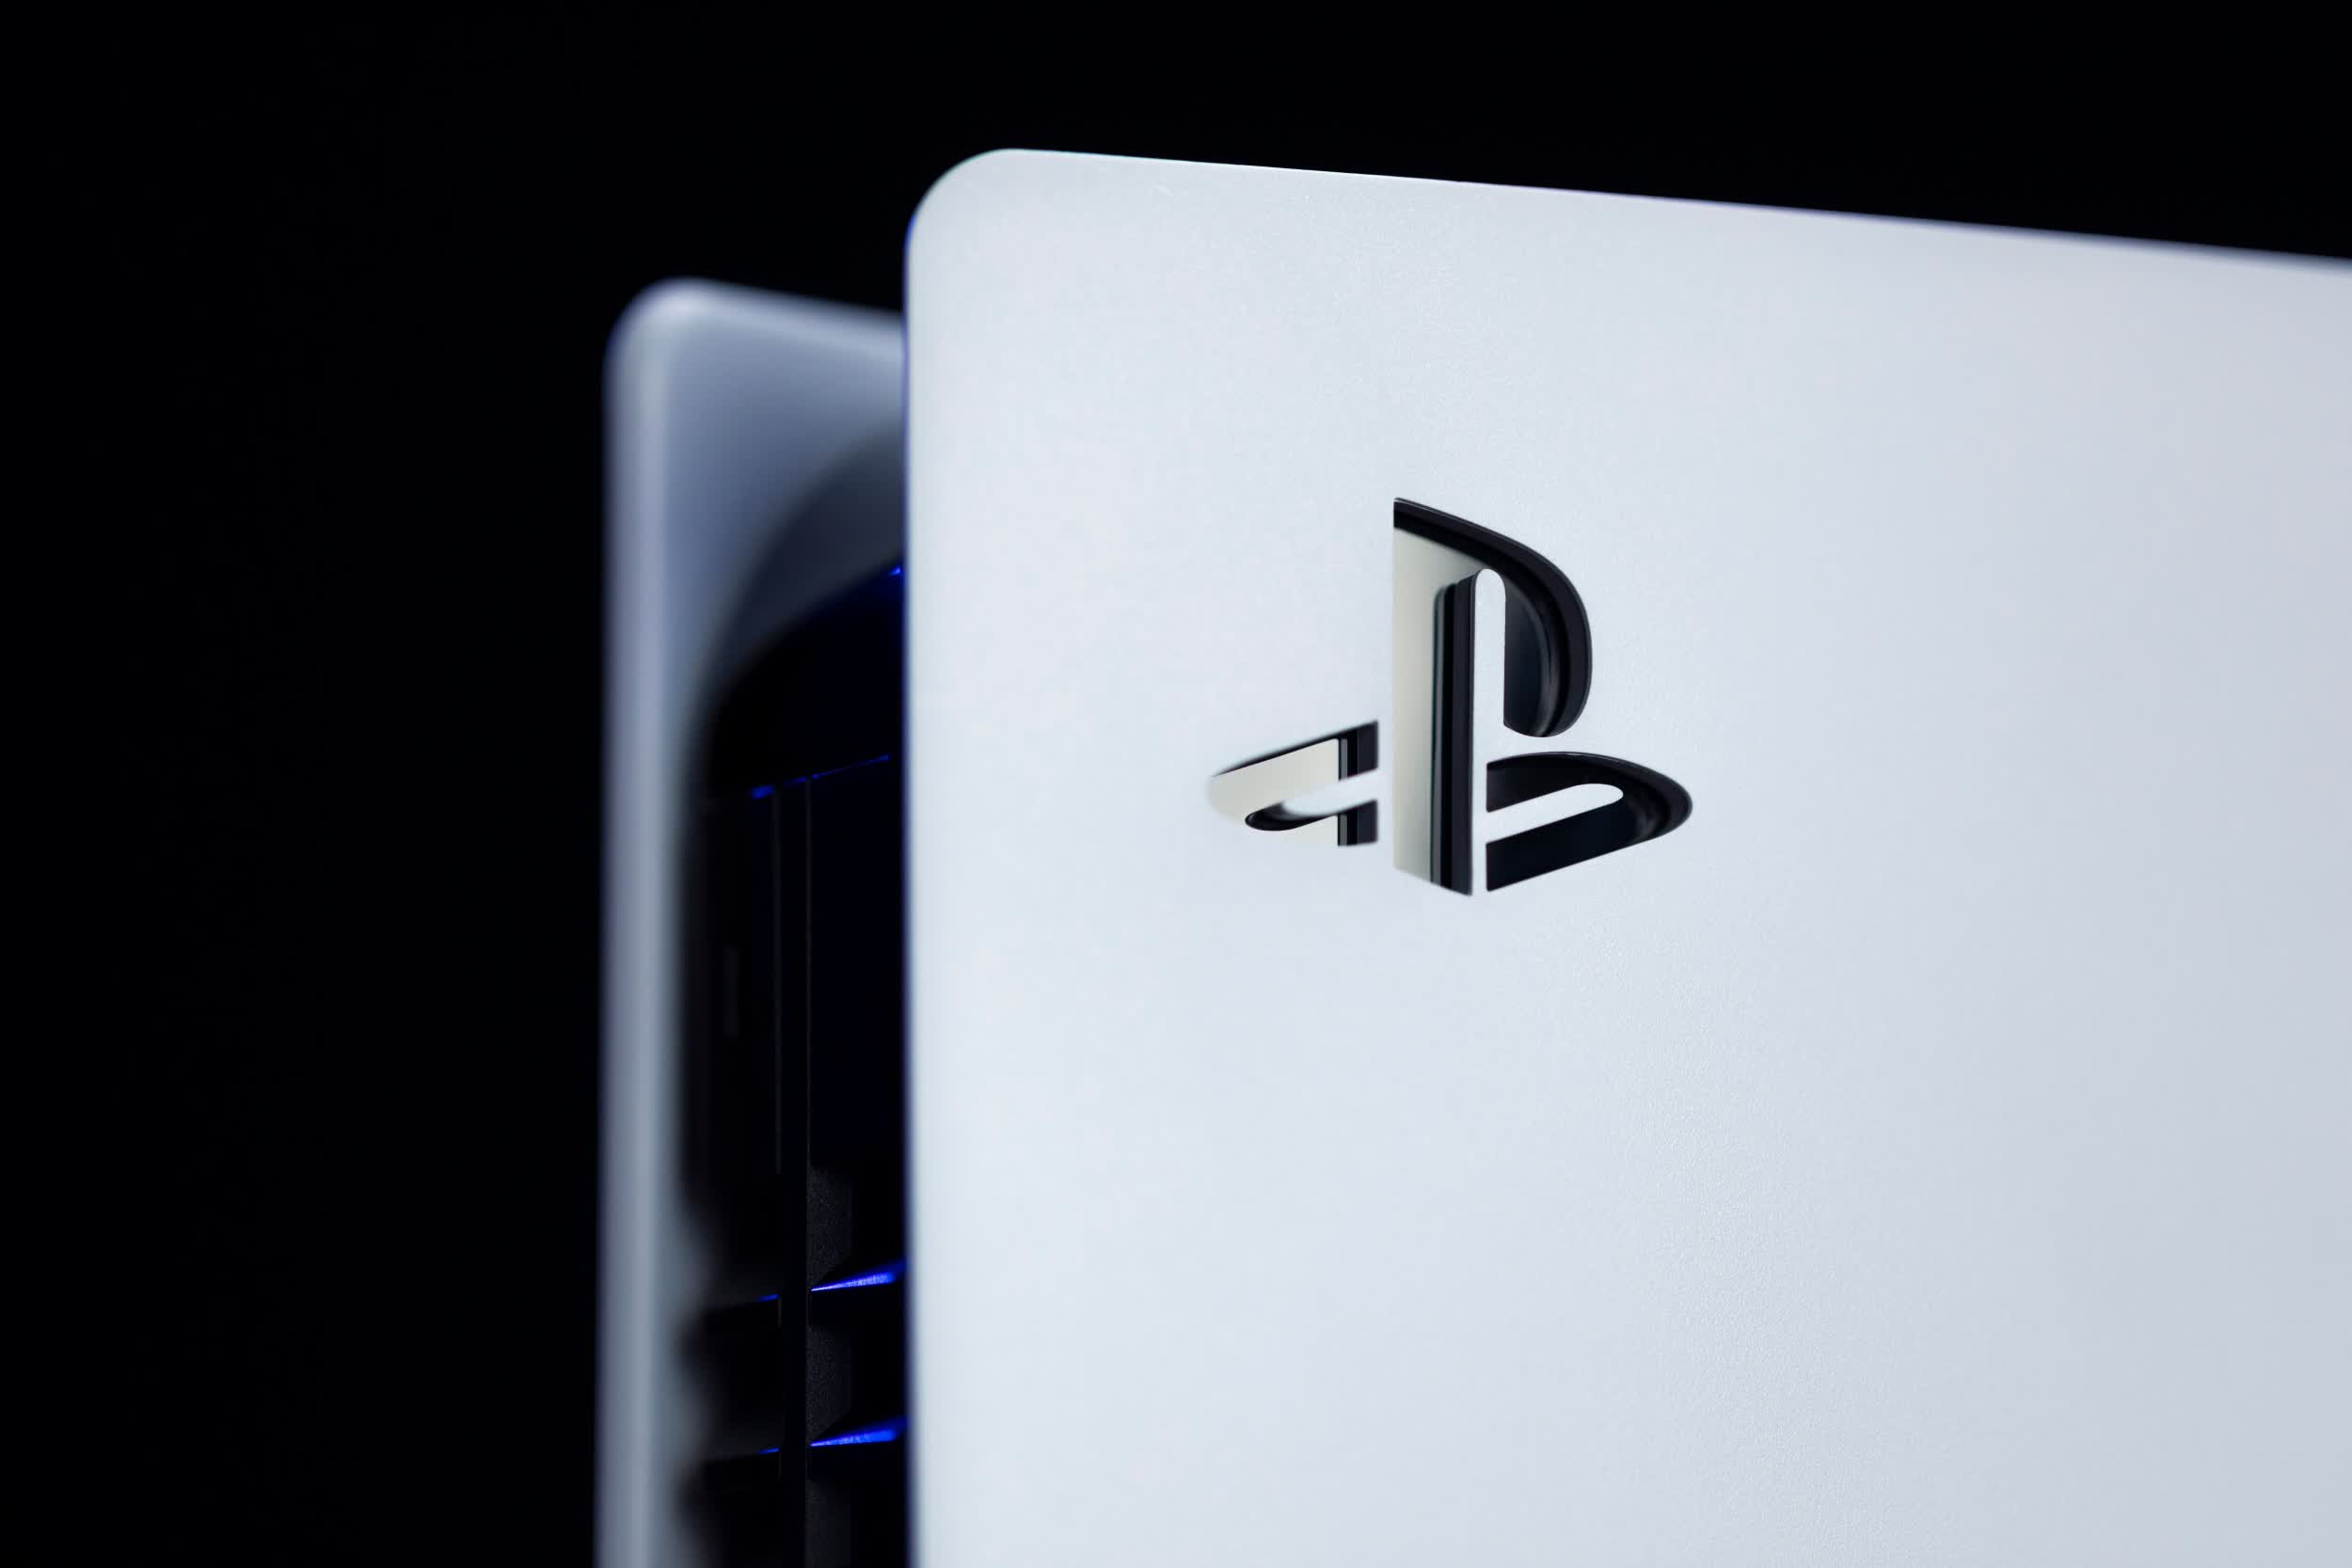 Sony is still working to increase PlayStation 5 supply by boosting production